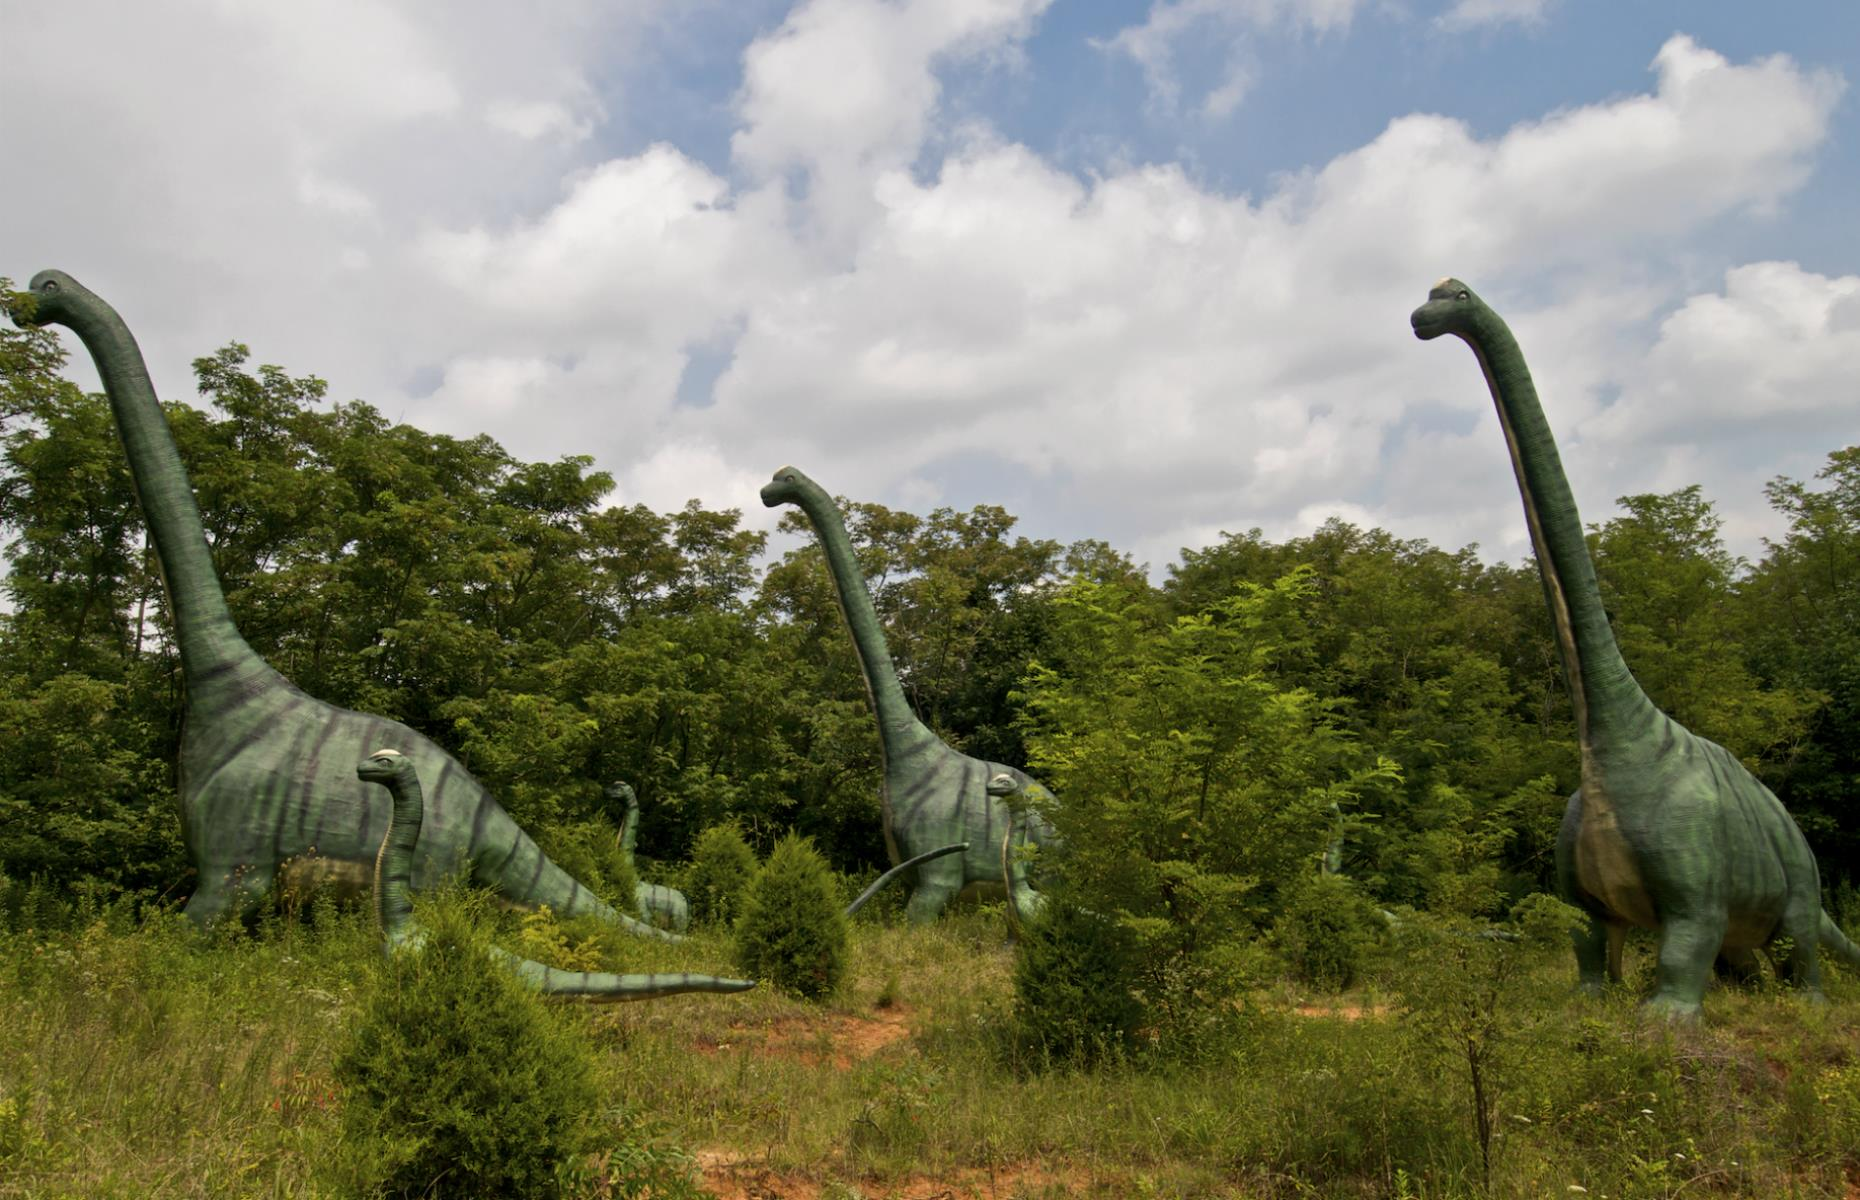 Slide 24 of 33: A giant T-Rex beckons road-trippers to pull into Dinosaur World, off the I-65 near Mammoth Cave National Park. Or, perhaps, spurs them on to drive on by in fear. This Jurassic Park–like roadside attraction is home to 150 dino sculptures scattered among the grounds and sometimes peeping above the trees. There's also a museum displaying dinosaur claws, bones and eggs. Find the most beautiful road trip in your state.